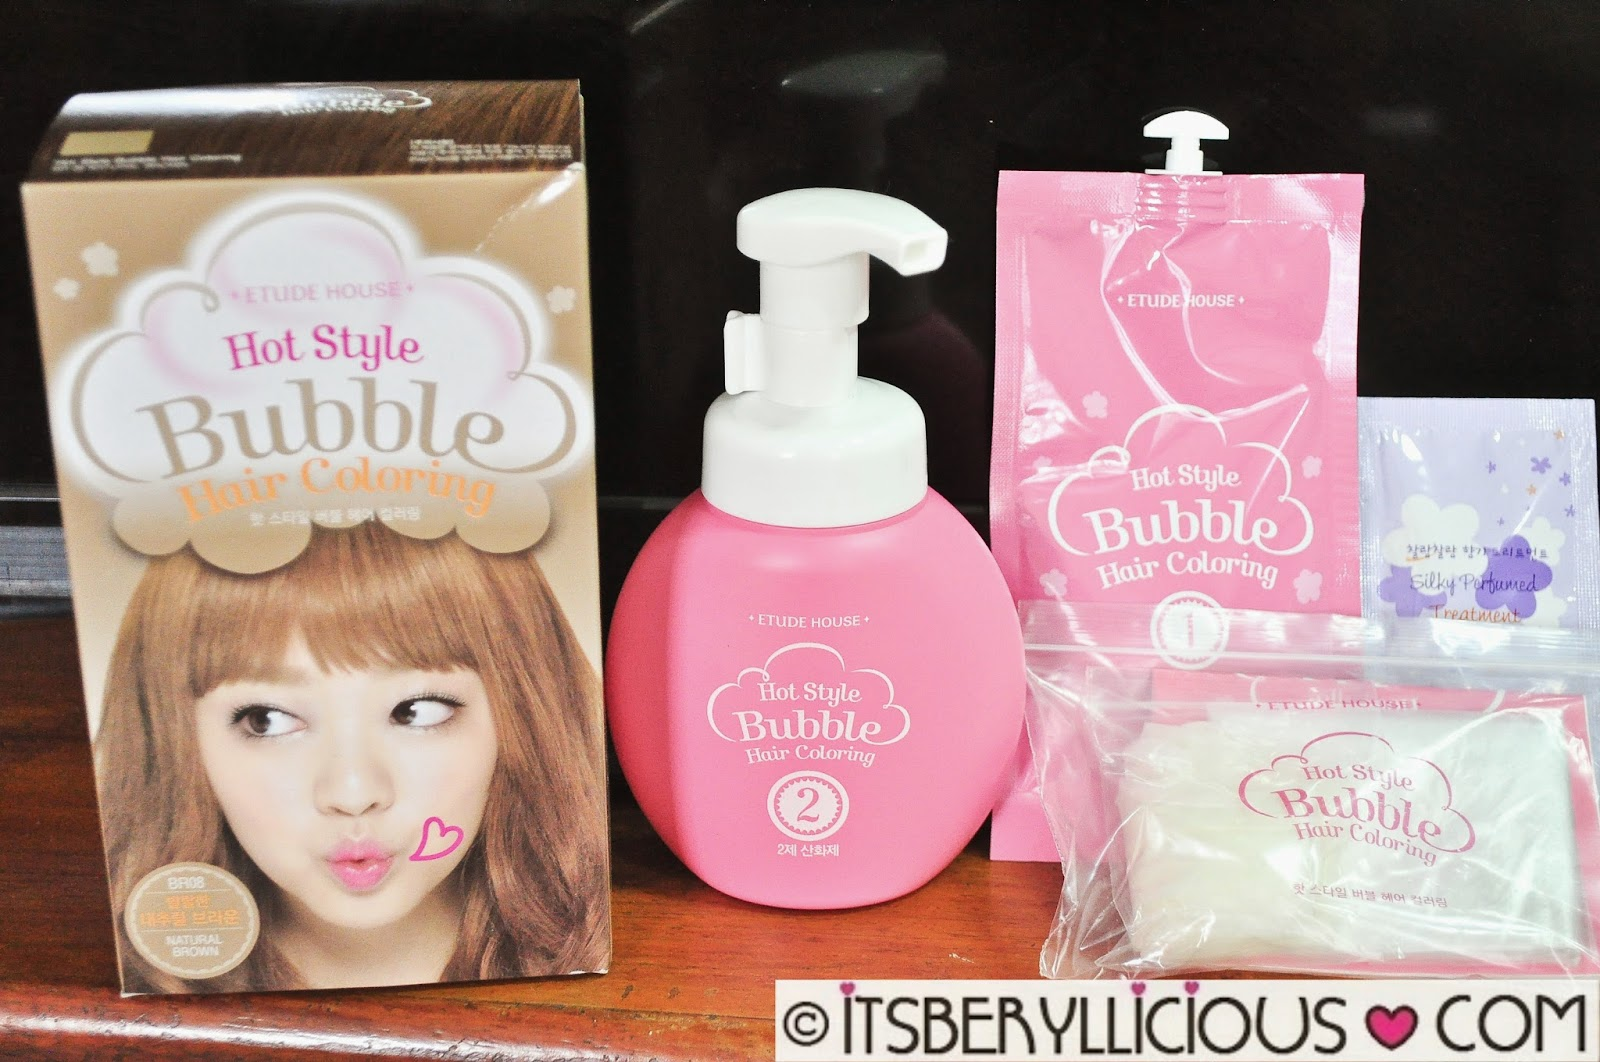 Etude House Hot Style Bubble Hair Coloring Shampoo in Natural ...